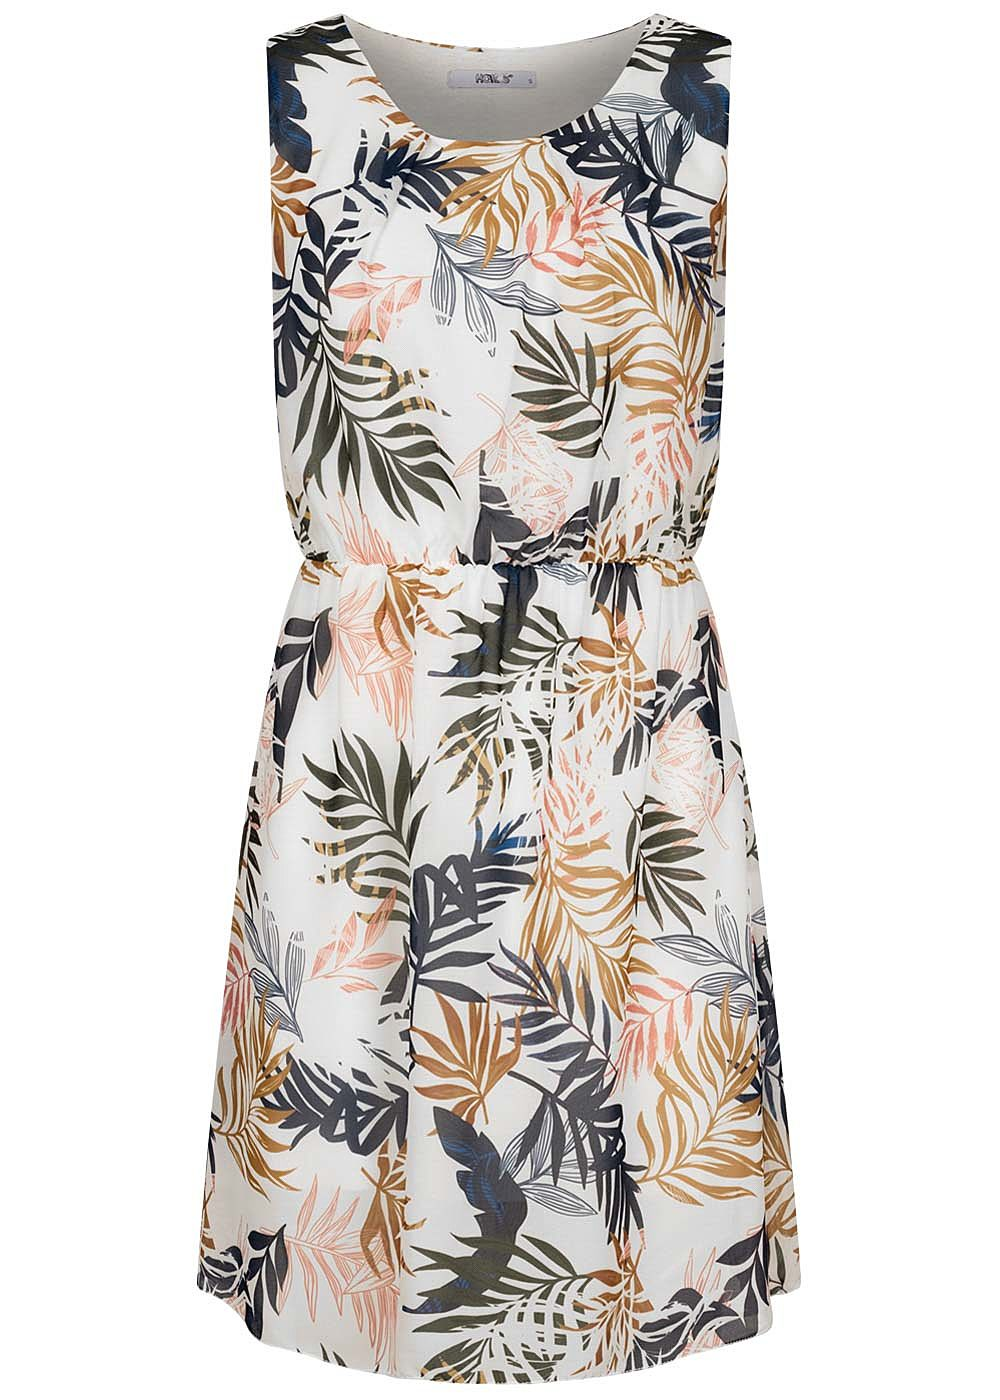 Hailys Damen Mini Kleid Taillengummibund 2-lagig Tropical Print off weiss blau - Art.-Nr.: 20073405